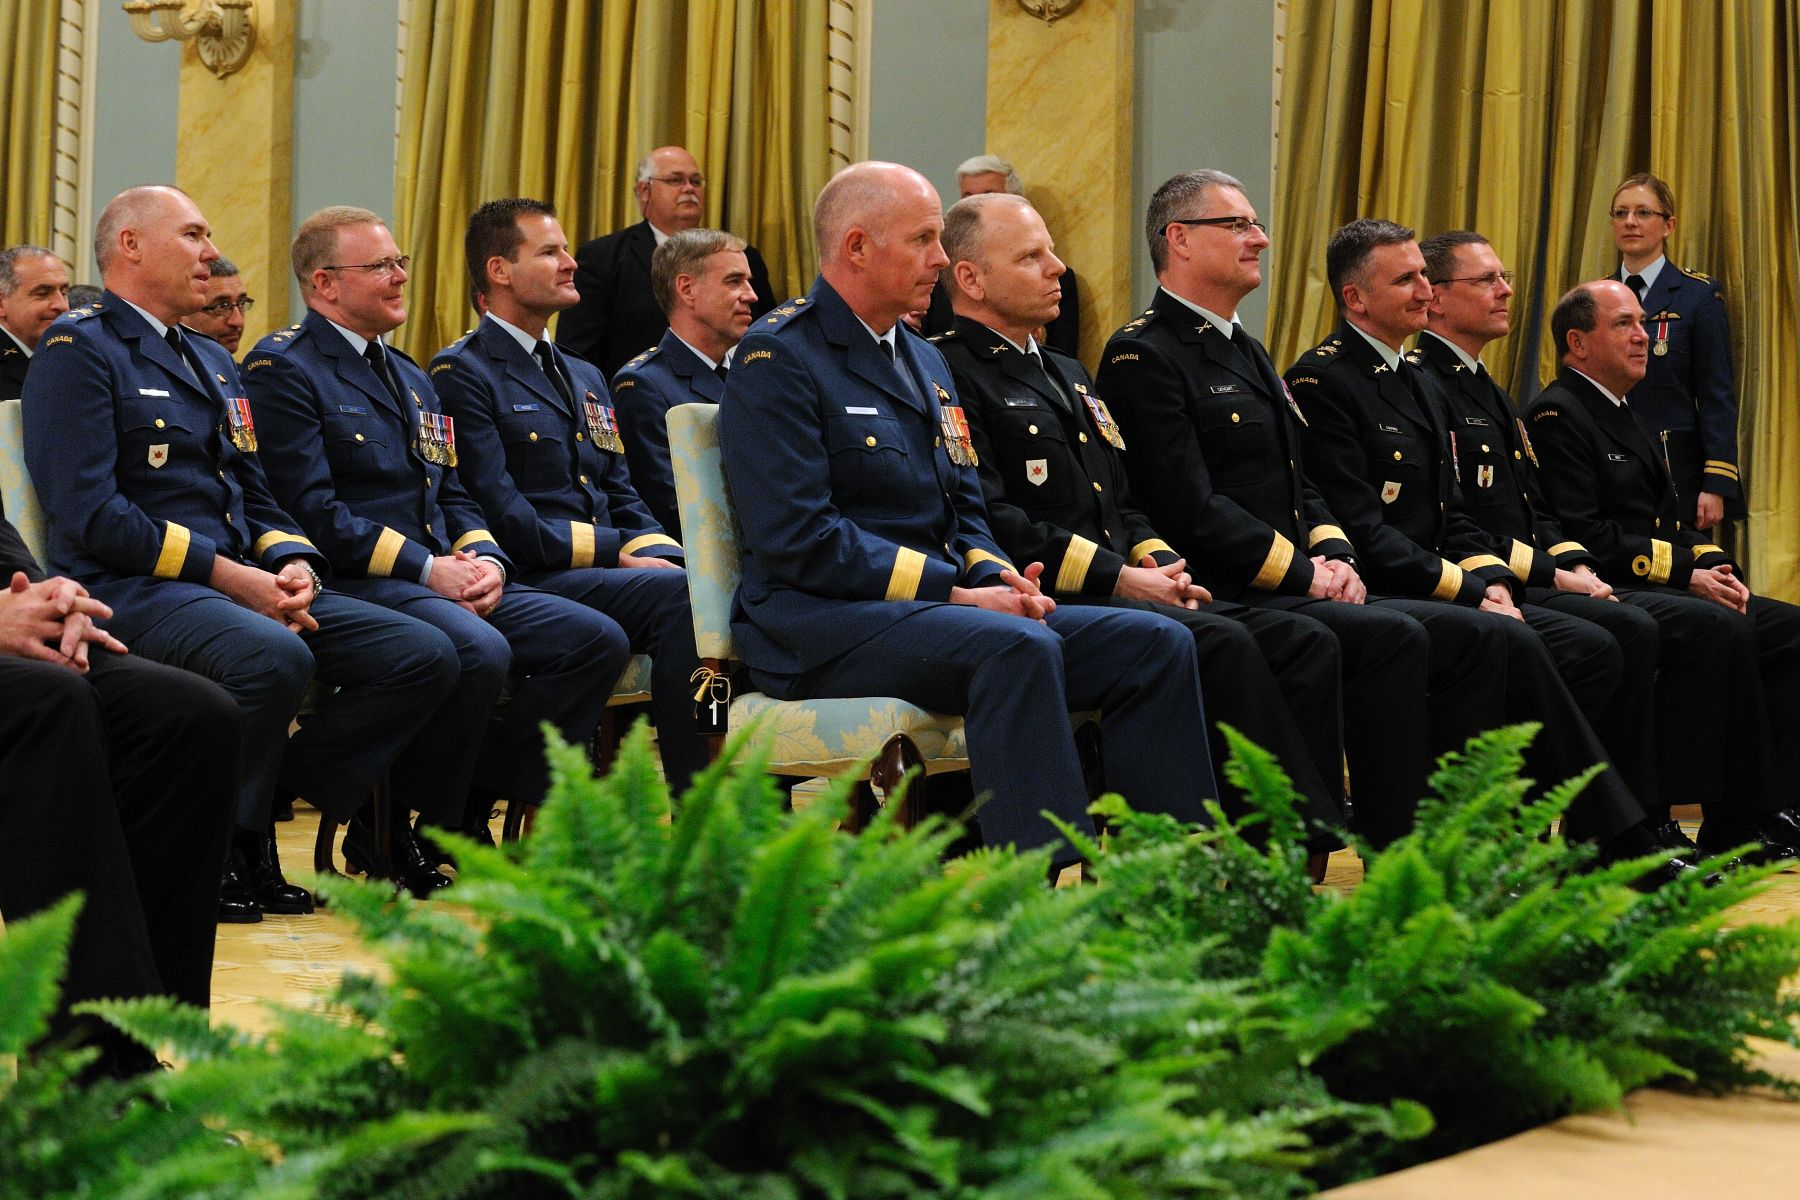 During a ceremony at Rideau Hall, His Excellency the Right Honourable David Johnston, Governor General and Commander-in-Chief of Canada, recognized the promotion of Canadian Forces members to the rank of general of flag officer.